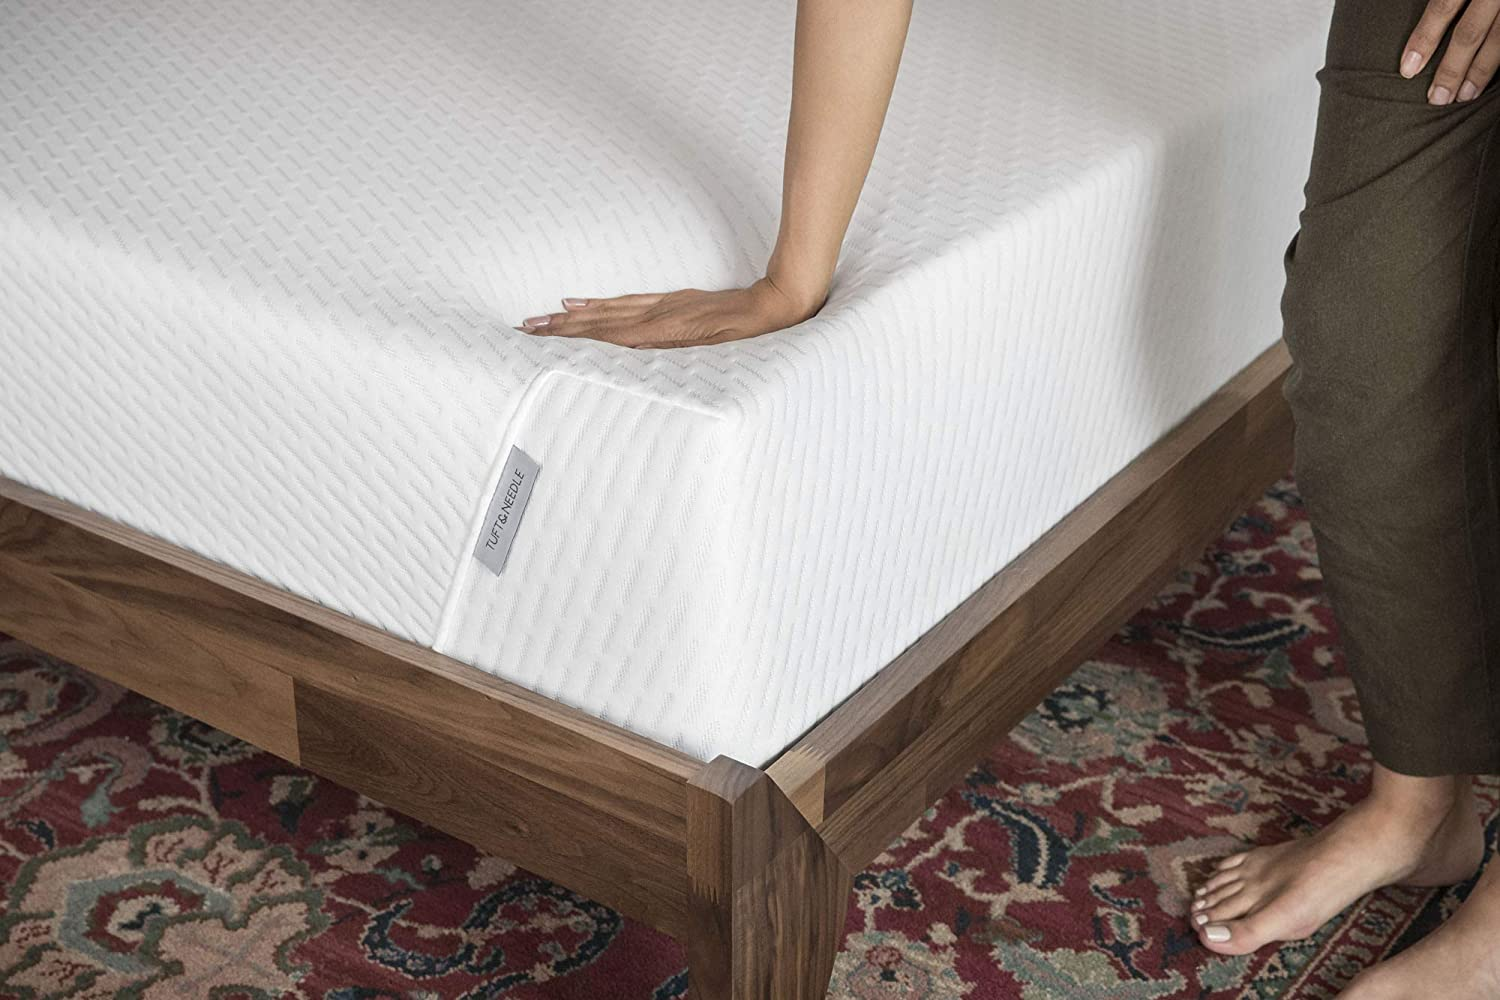 Tuft & Needle Queen Mattress, Bed in a Box, T&N Adaptive Foam, Sleeps Cooler with More Pressure Relief & Support Than Memory Foam, Certi-PUR & Oeko-Tex 100 Certified, 10-Year Warranty.